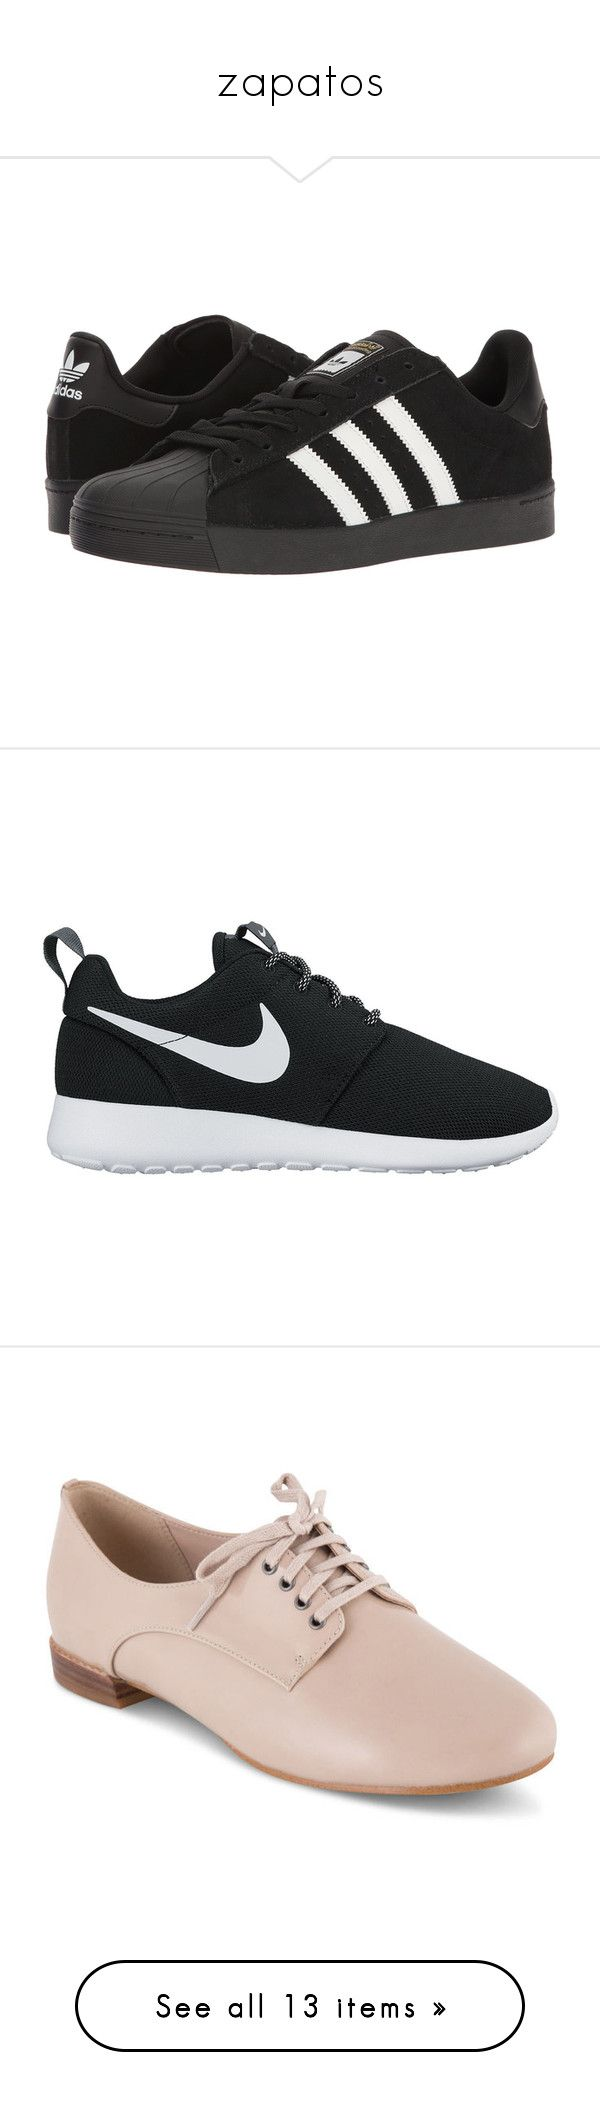 """""""zapatos"""" by donayralove on Polyvore featuring shoes, sneakers, adidas, zapatos, skate shoes, striped shoes, traction shoes, black white striped shoes, nike y nike footwear"""